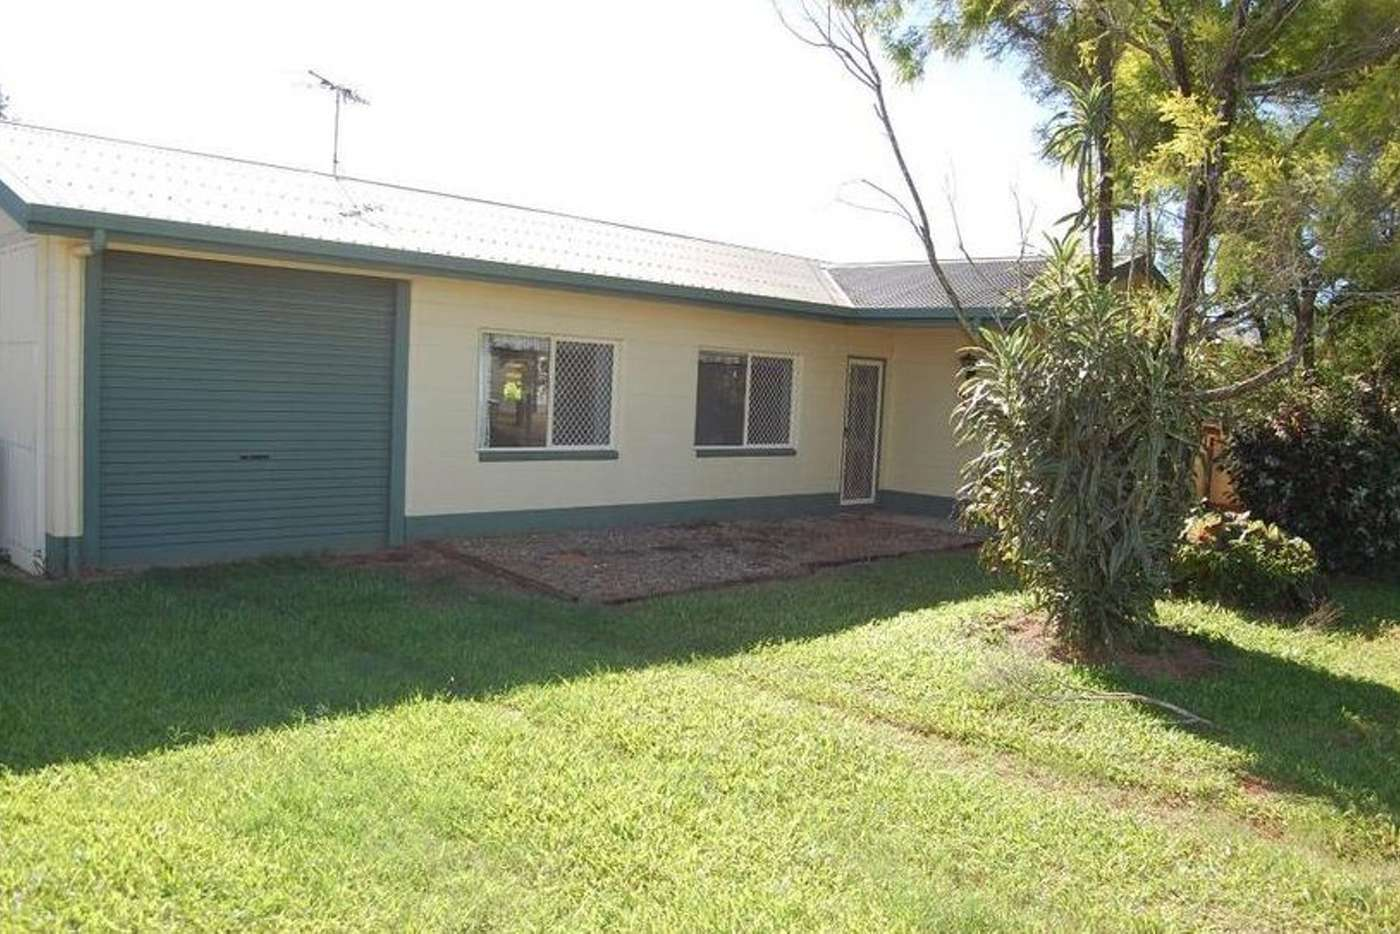 Main view of Homely house listing, 6 Foxwood Avenue, Wangan QLD 4871